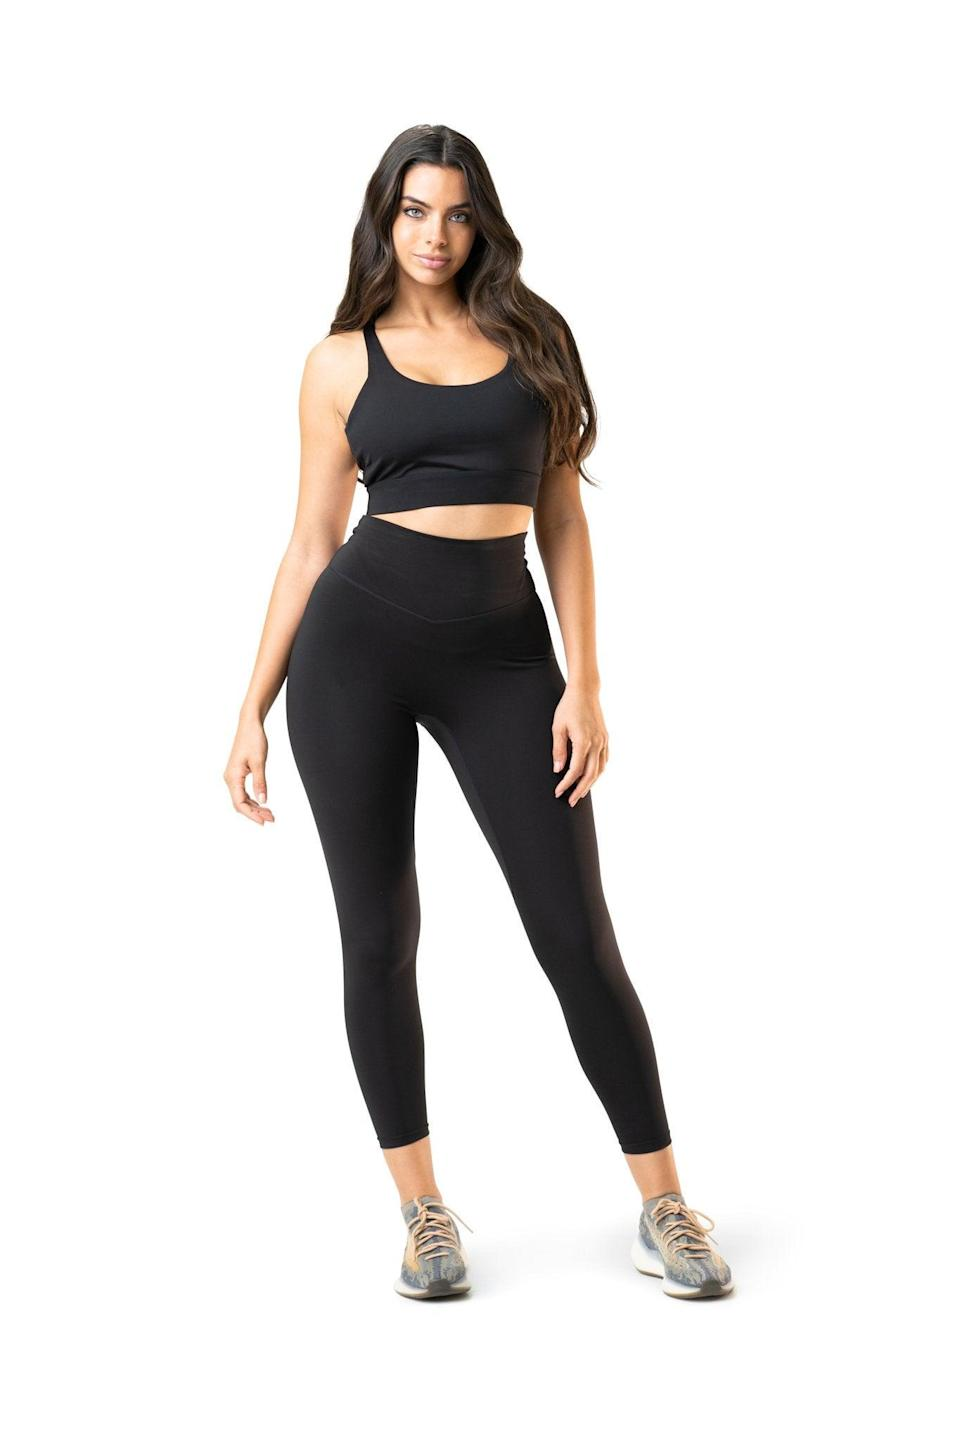 "<h2>Balance Athletica Tenacity Pant</h2><br>""I own a <em>lot</em> of pairs of basic black leggings. But when I find a pair I really love, I'll wear them to death — and that's exactly what I've been doing with these ones from Balance Athletica. They're made out of great material, don't sag down mid-workout (or ever), and look cute if you're just going out for a quick coffee run. 10/10 would recommend."" <em>— Elizabeth Gulino, health and wellness writer</em><br><br><strong>Balance Athletica</strong> Tenacity Pant, $, available at <a href=""https://go.skimresources.com/?id=30283X879131&url=https%3A%2F%2Fwww.balanceathletica.com%2Fcollections%2Foutlander-collection%2Fproducts%2Fthe-tenacity-pant-midnight"" rel=""nofollow noopener"" target=""_blank"" data-ylk=""slk:Balance Athletica"" class=""link rapid-noclick-resp"">Balance Athletica</a>"